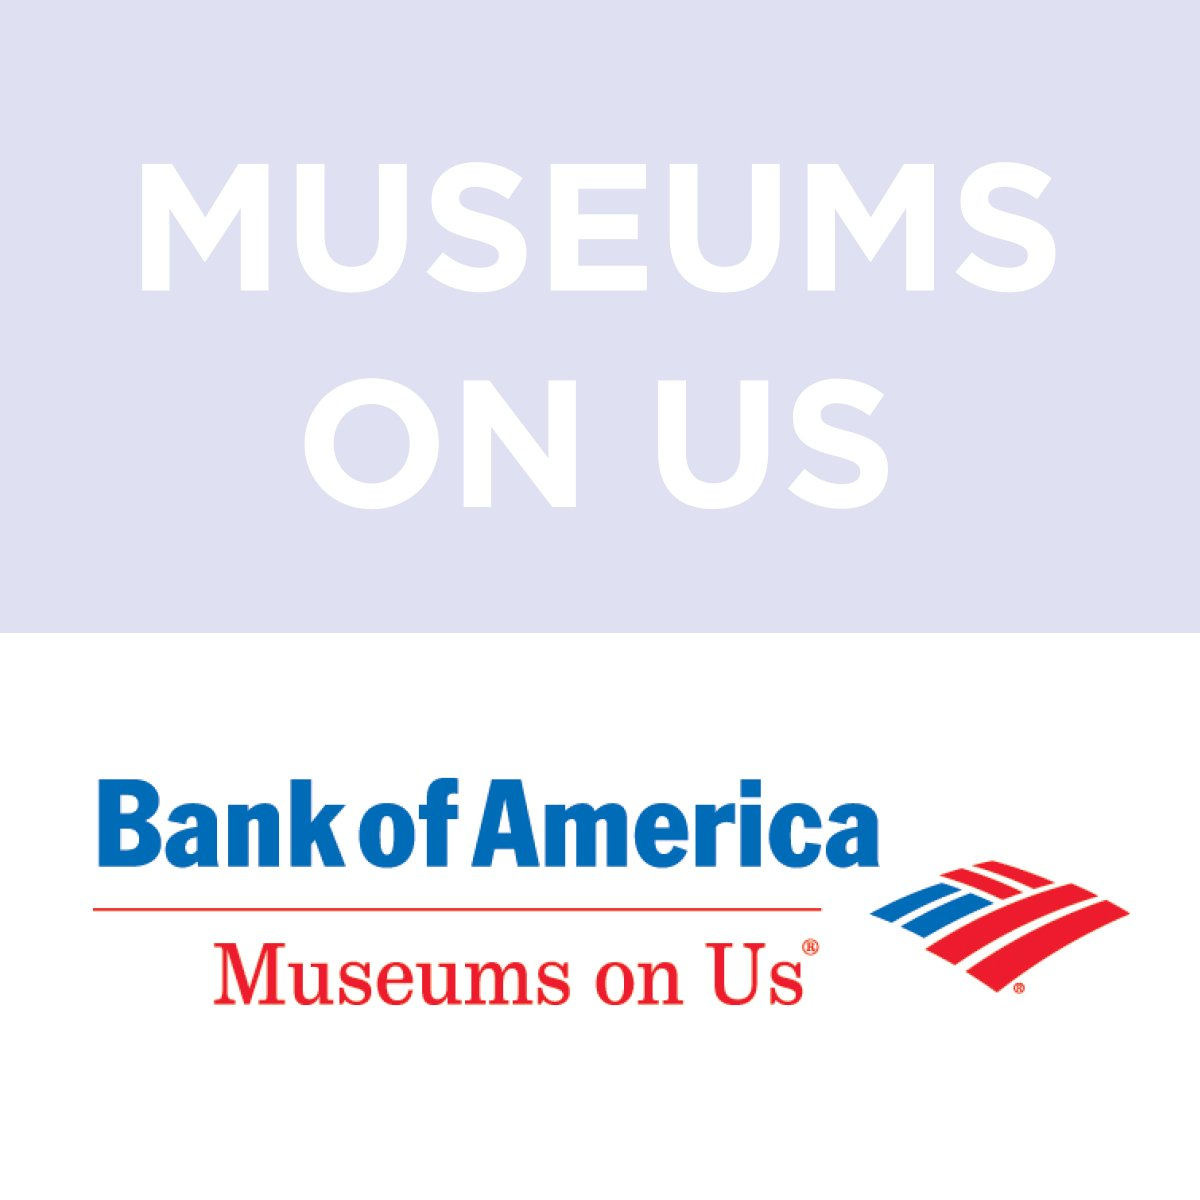 NSU Art Museum On Twitter This Sat  Sun Is Museums On Us - Museums on us florida